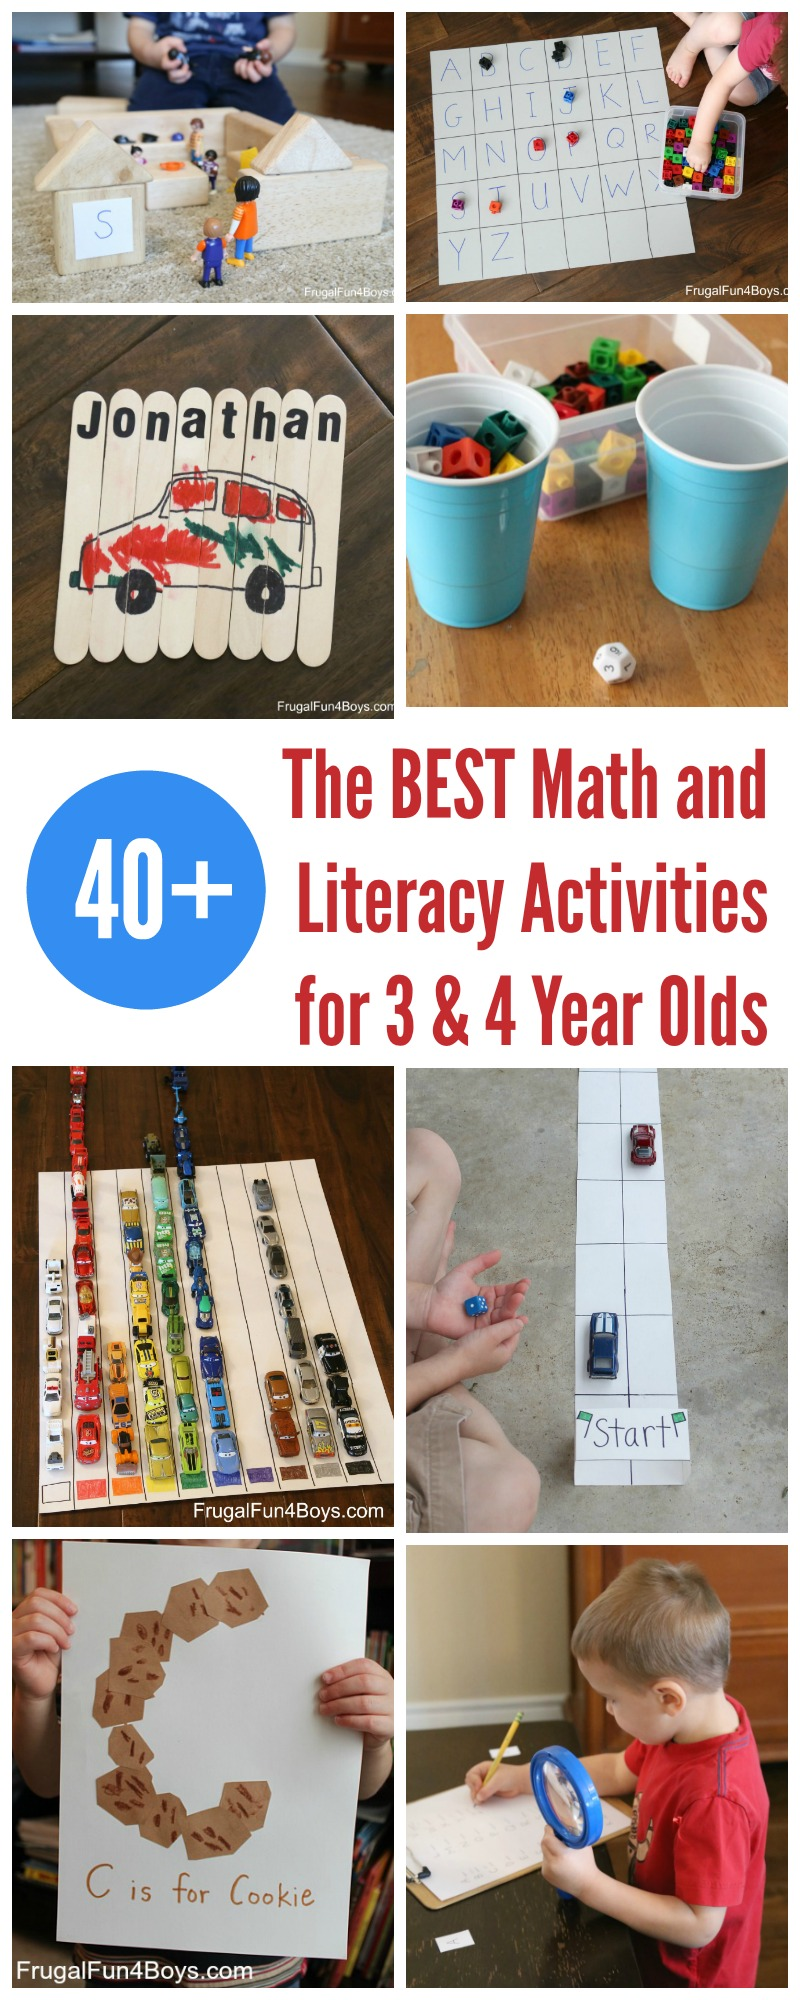 40+ of the BEST Math and Literacy Activities for Preschoolers 3 & 4 Year Olds